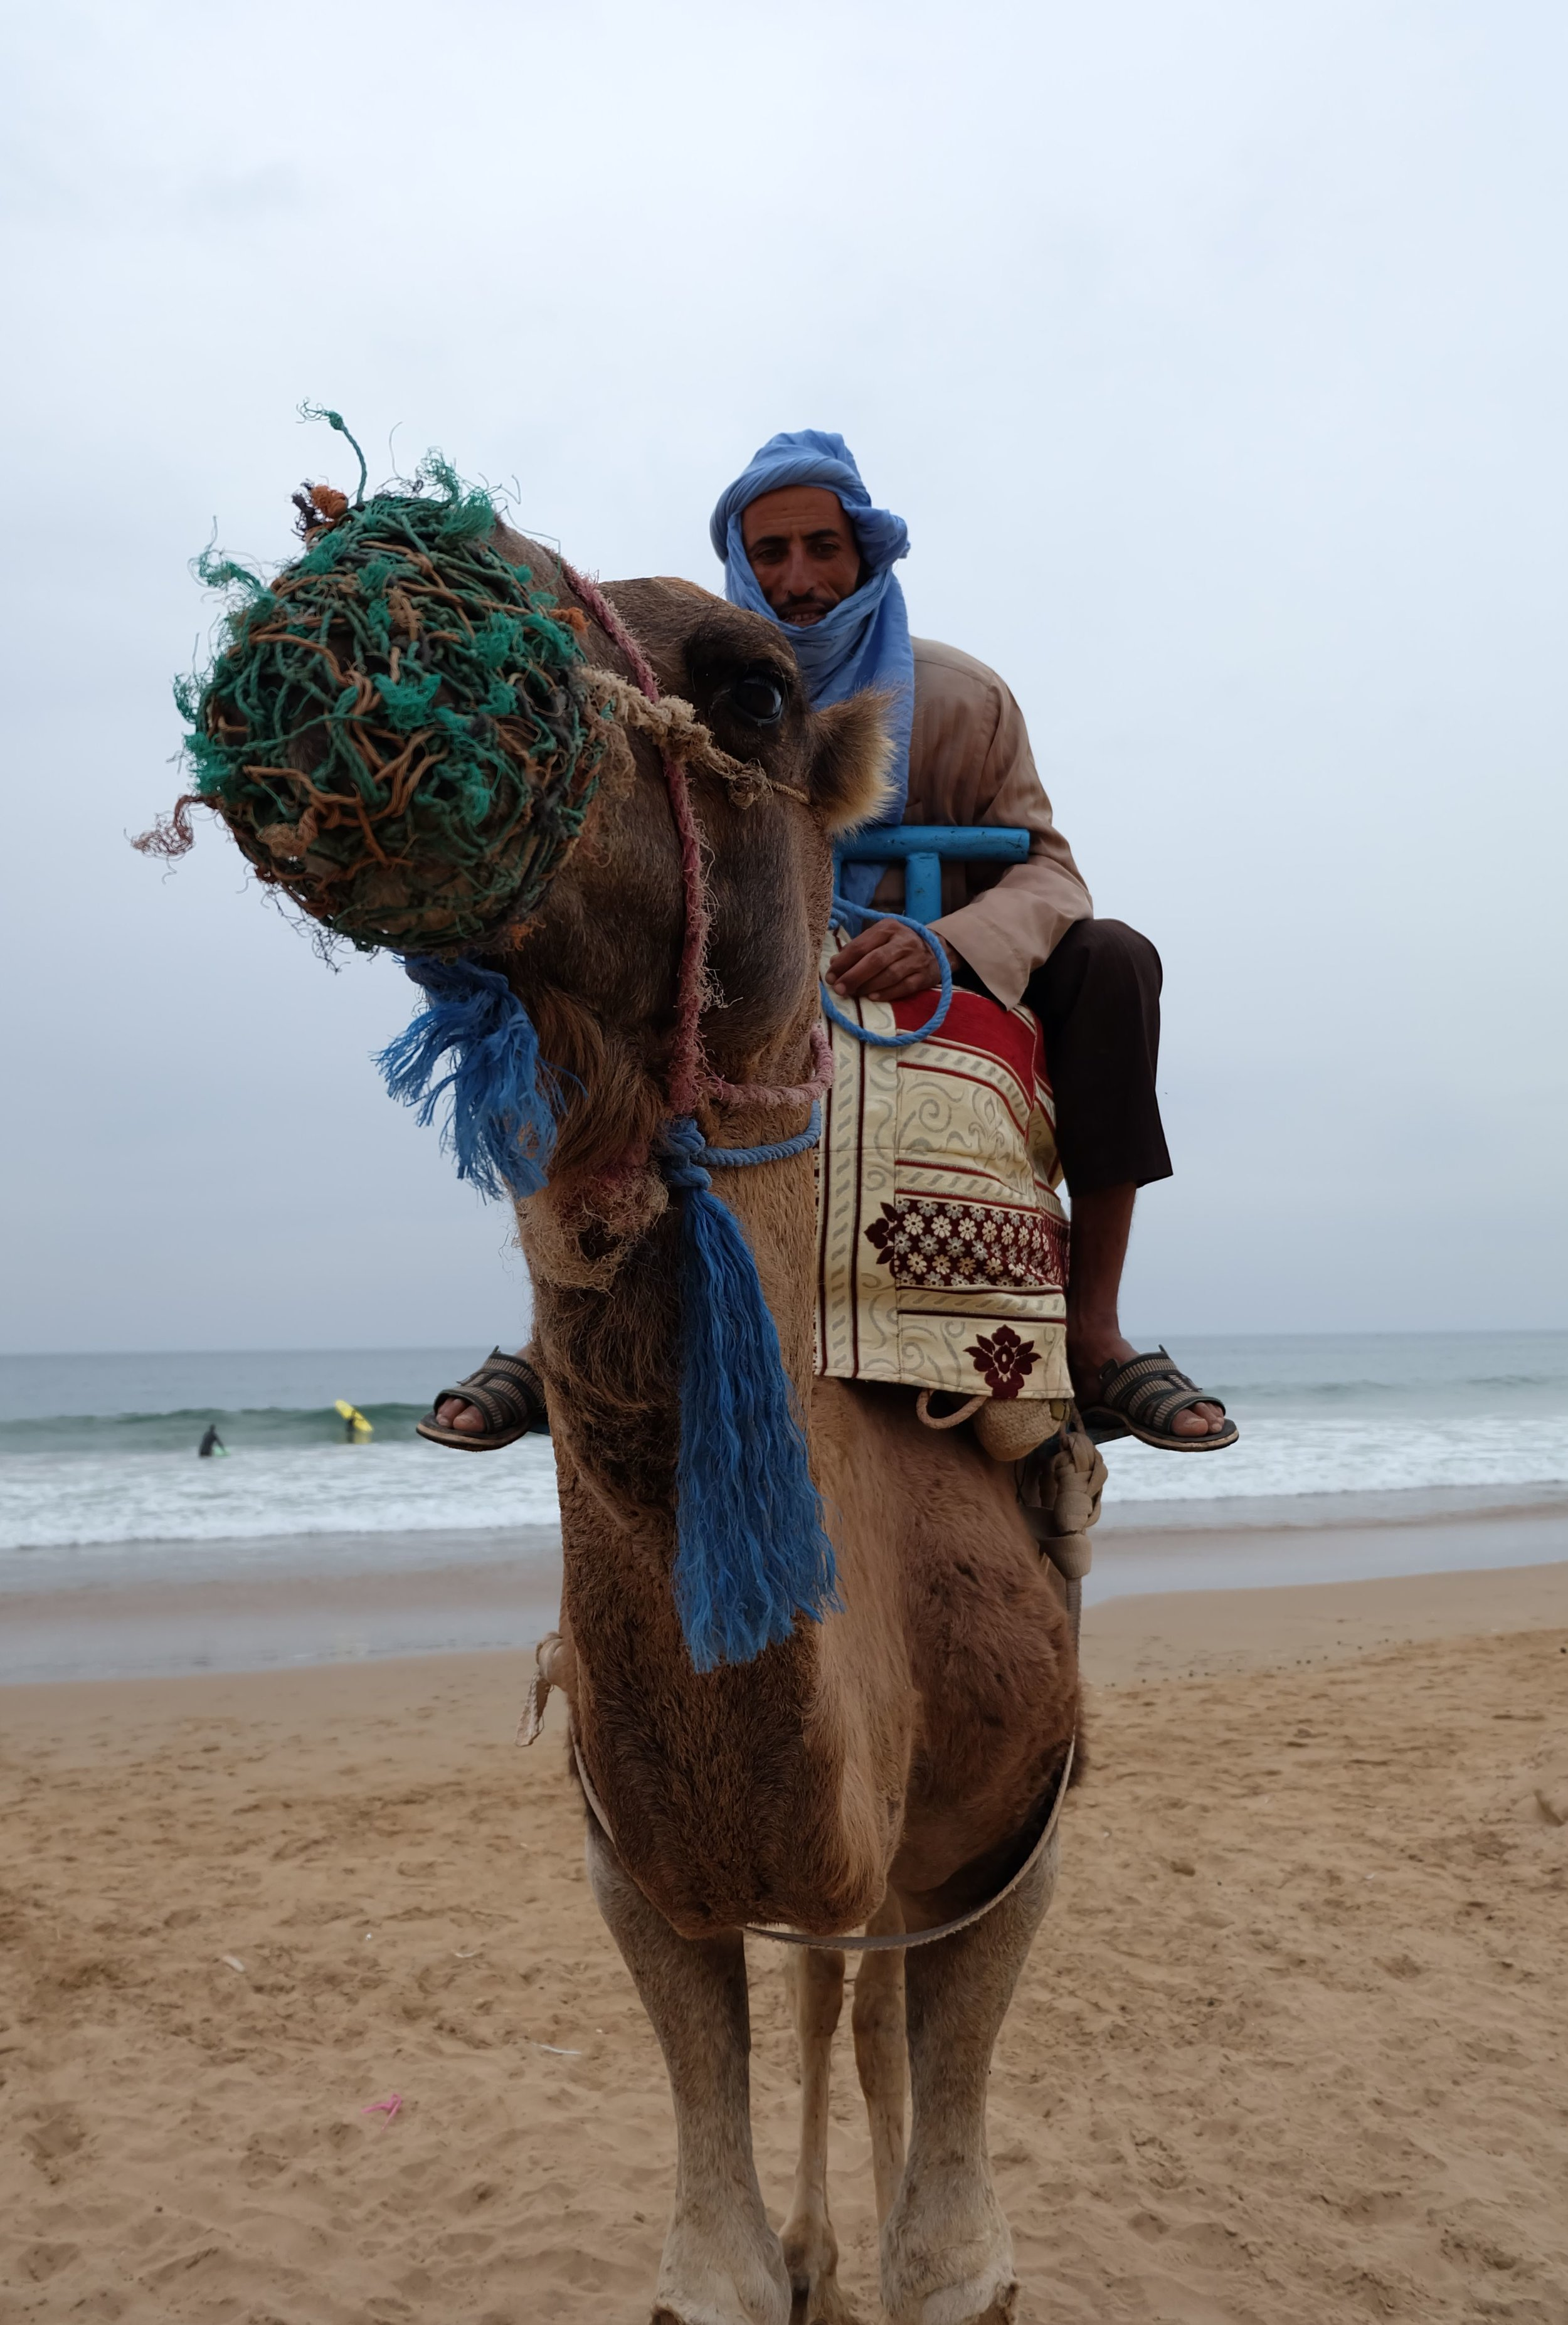 camel-taghazout-morocco-animal-cruelty